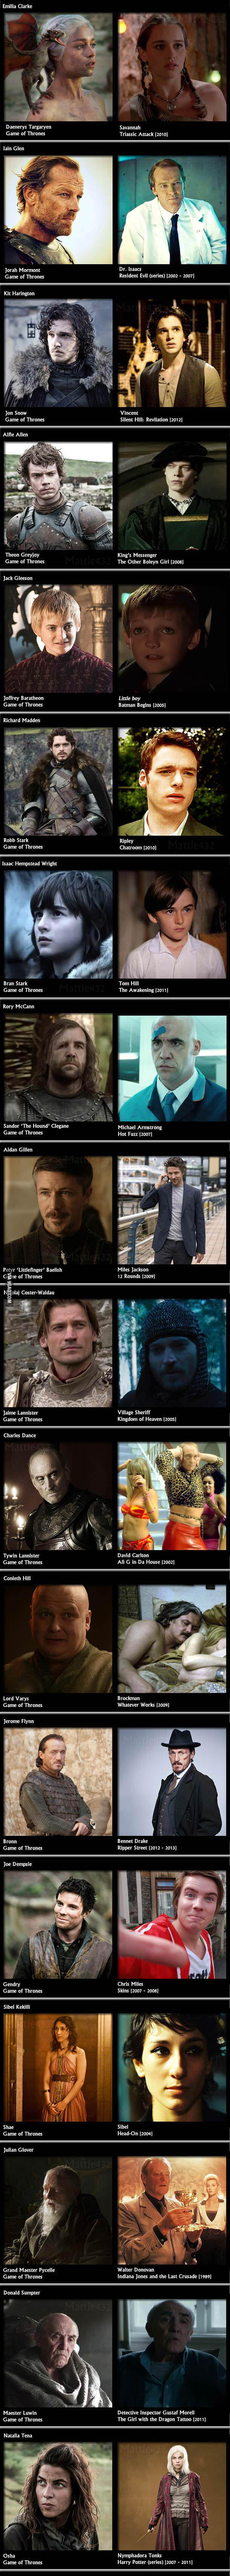 Other Roles of the Game of Thrones Cast